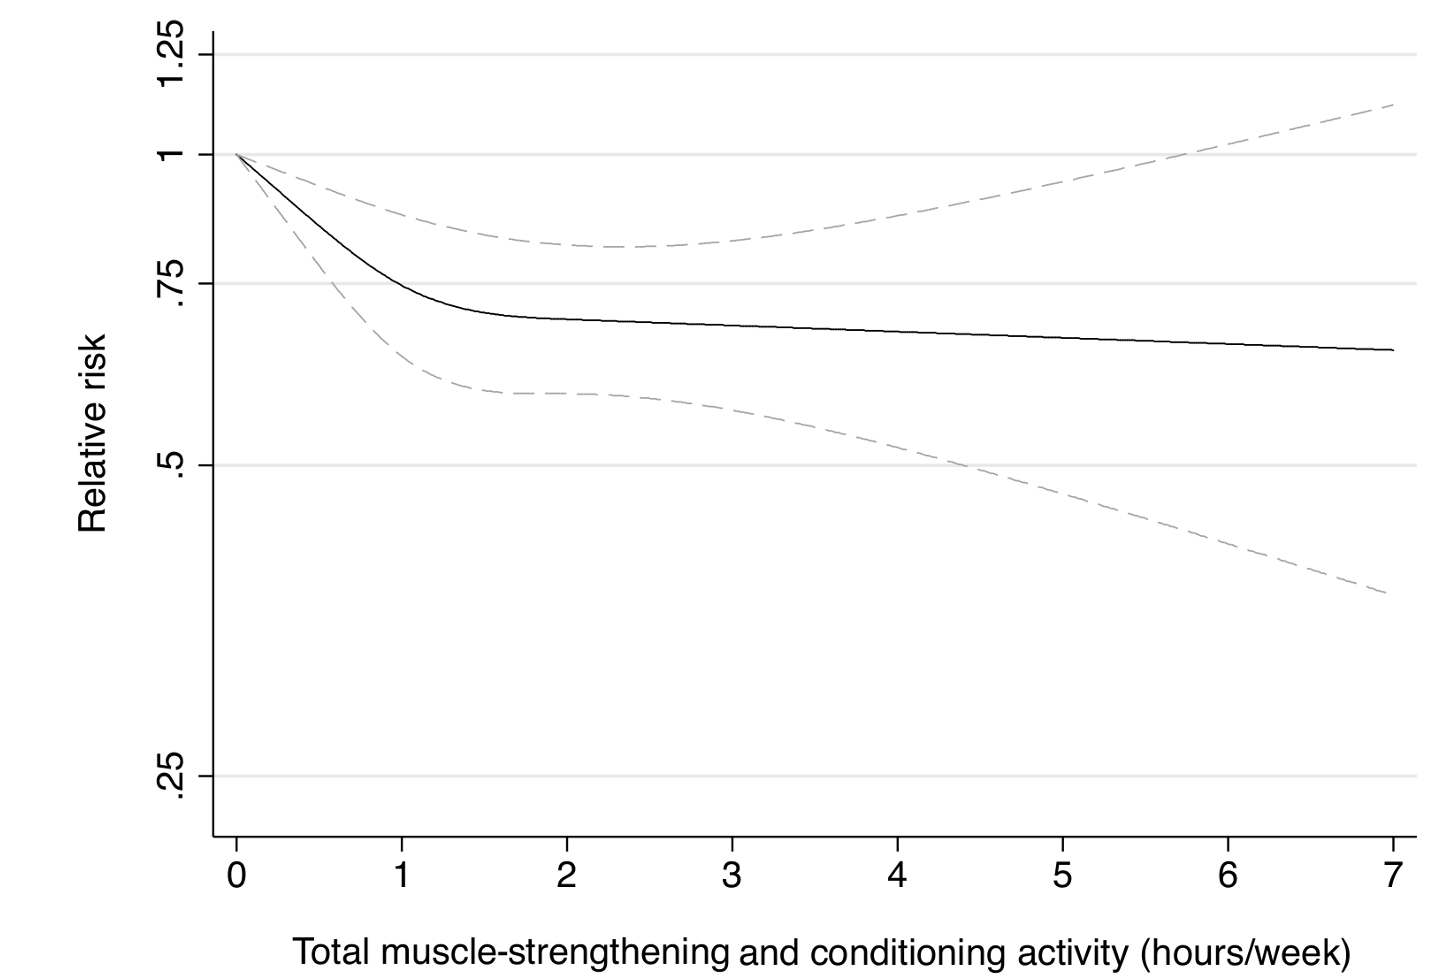 Dose-response relationship between total muscle-strengthening activity (hours/week) and risk of type 2 diabetes in women from the Nurses' Health Study II.